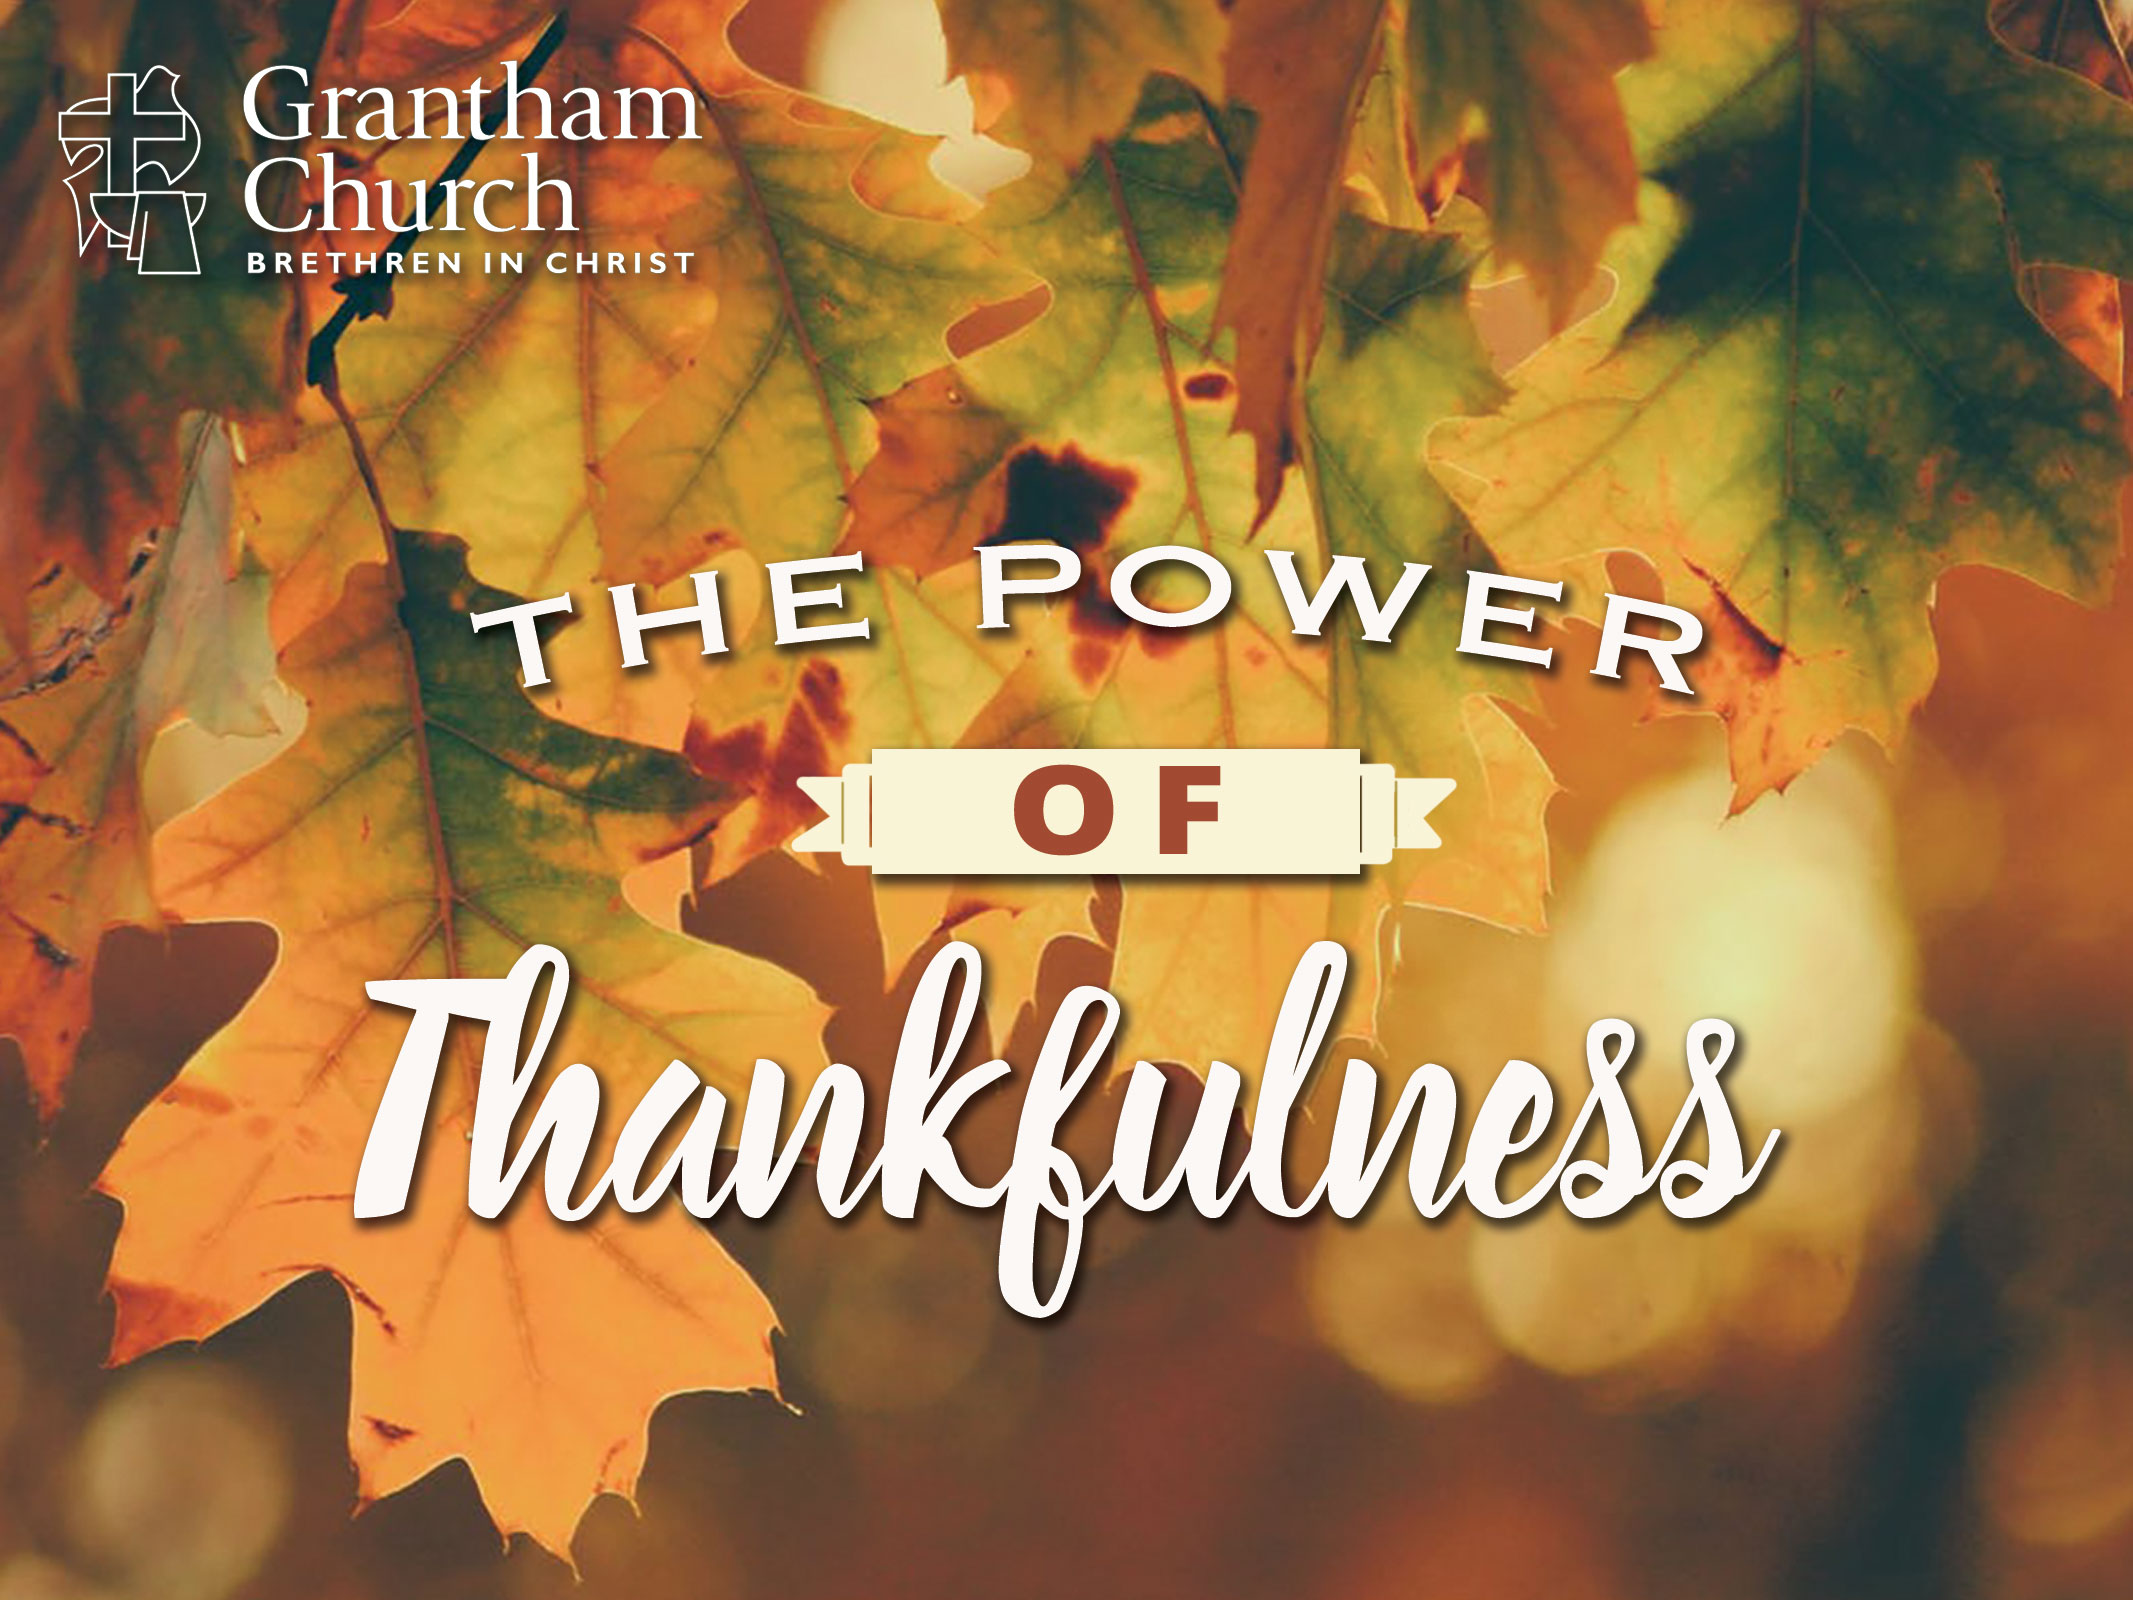 thankfulness-slide1118b.jpg